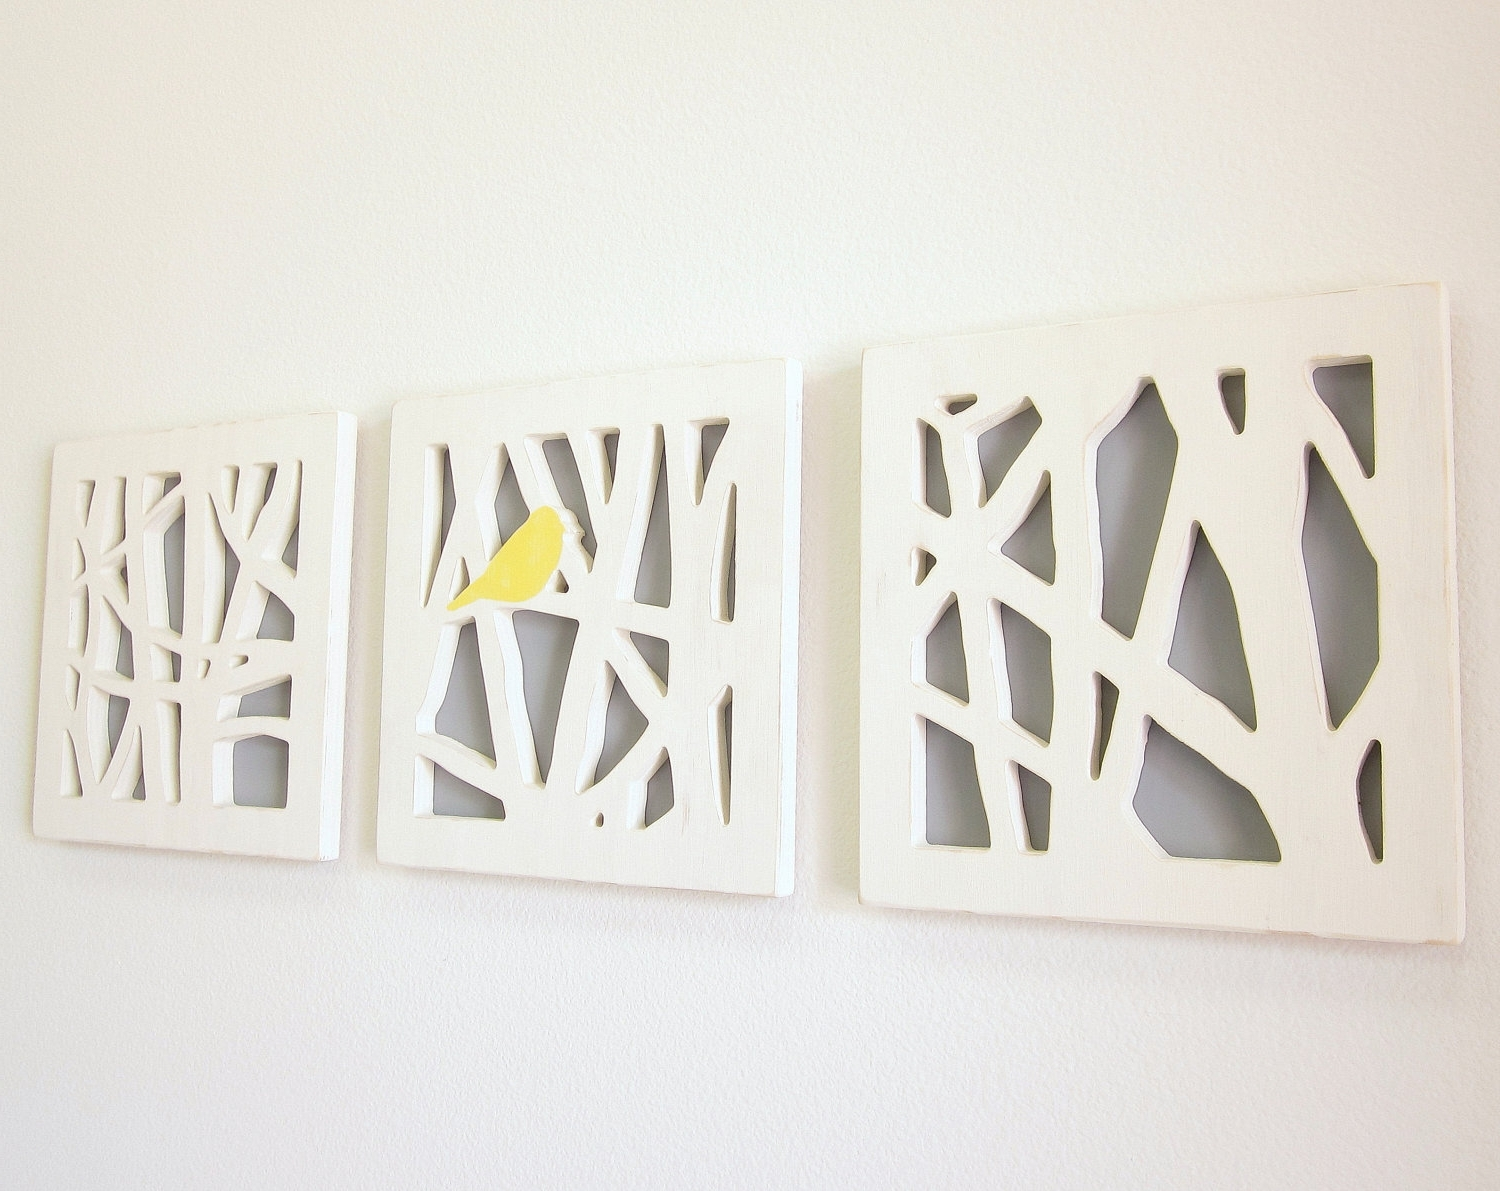 Wall Art Designs: Bathroom Wall Art Ideas Bathroom Abstract Wall Intended For Current Abstract Bird Wall Art (View 14 of 15)